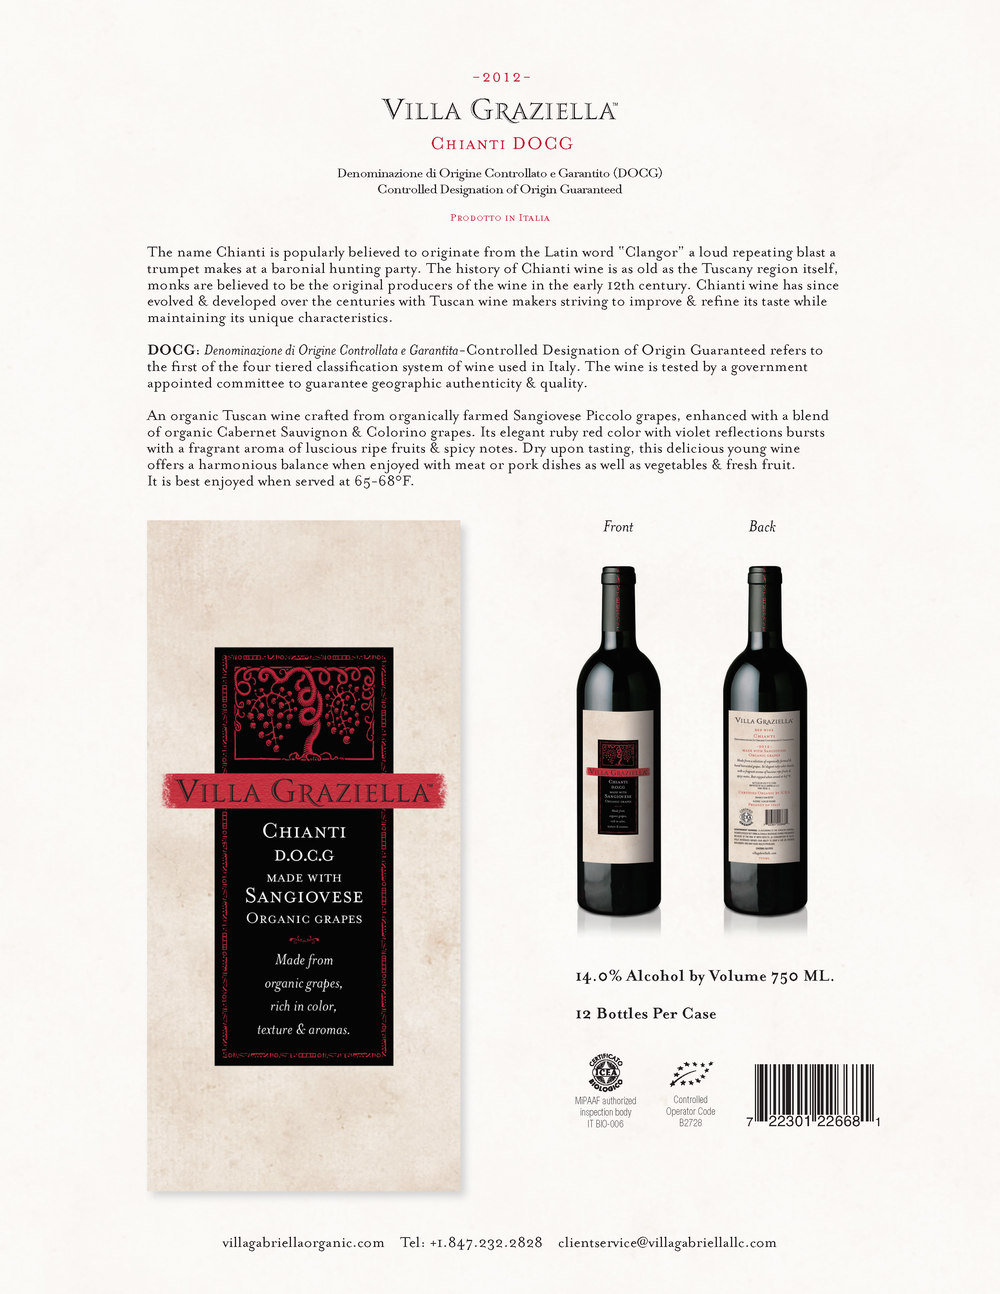 -2012- Chianti DOCG Sell Sheet